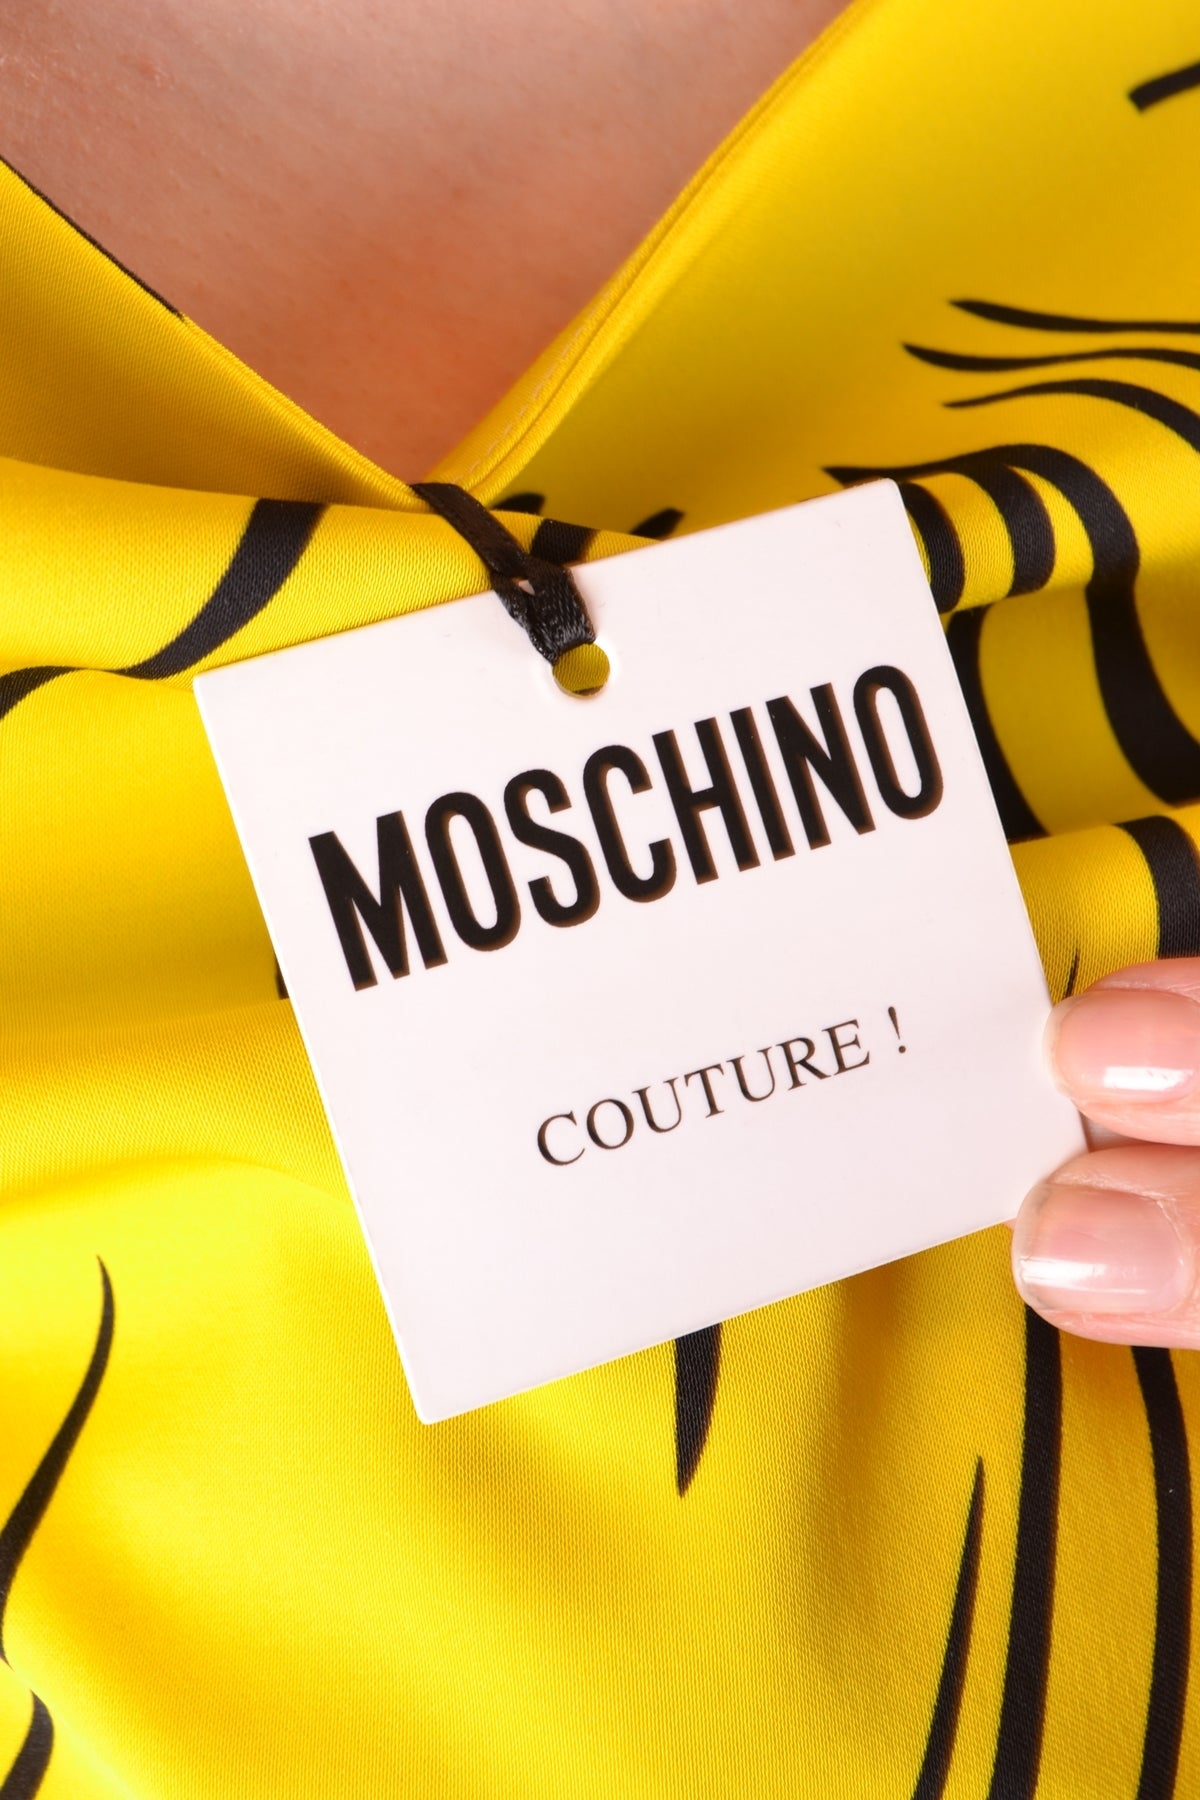 Dress Moschino-Dress - WOMAN-Product Details Terms: New With LabelYear: 2018Main Color: MulticolorGender: WomanMade In: ItalyManufacturer Part Number: D A0420Size: ItSeason: Fall / WinterClothing Type: TaglieurComposition: Wool 19%, Viscose 79%-Keyomi-Sook